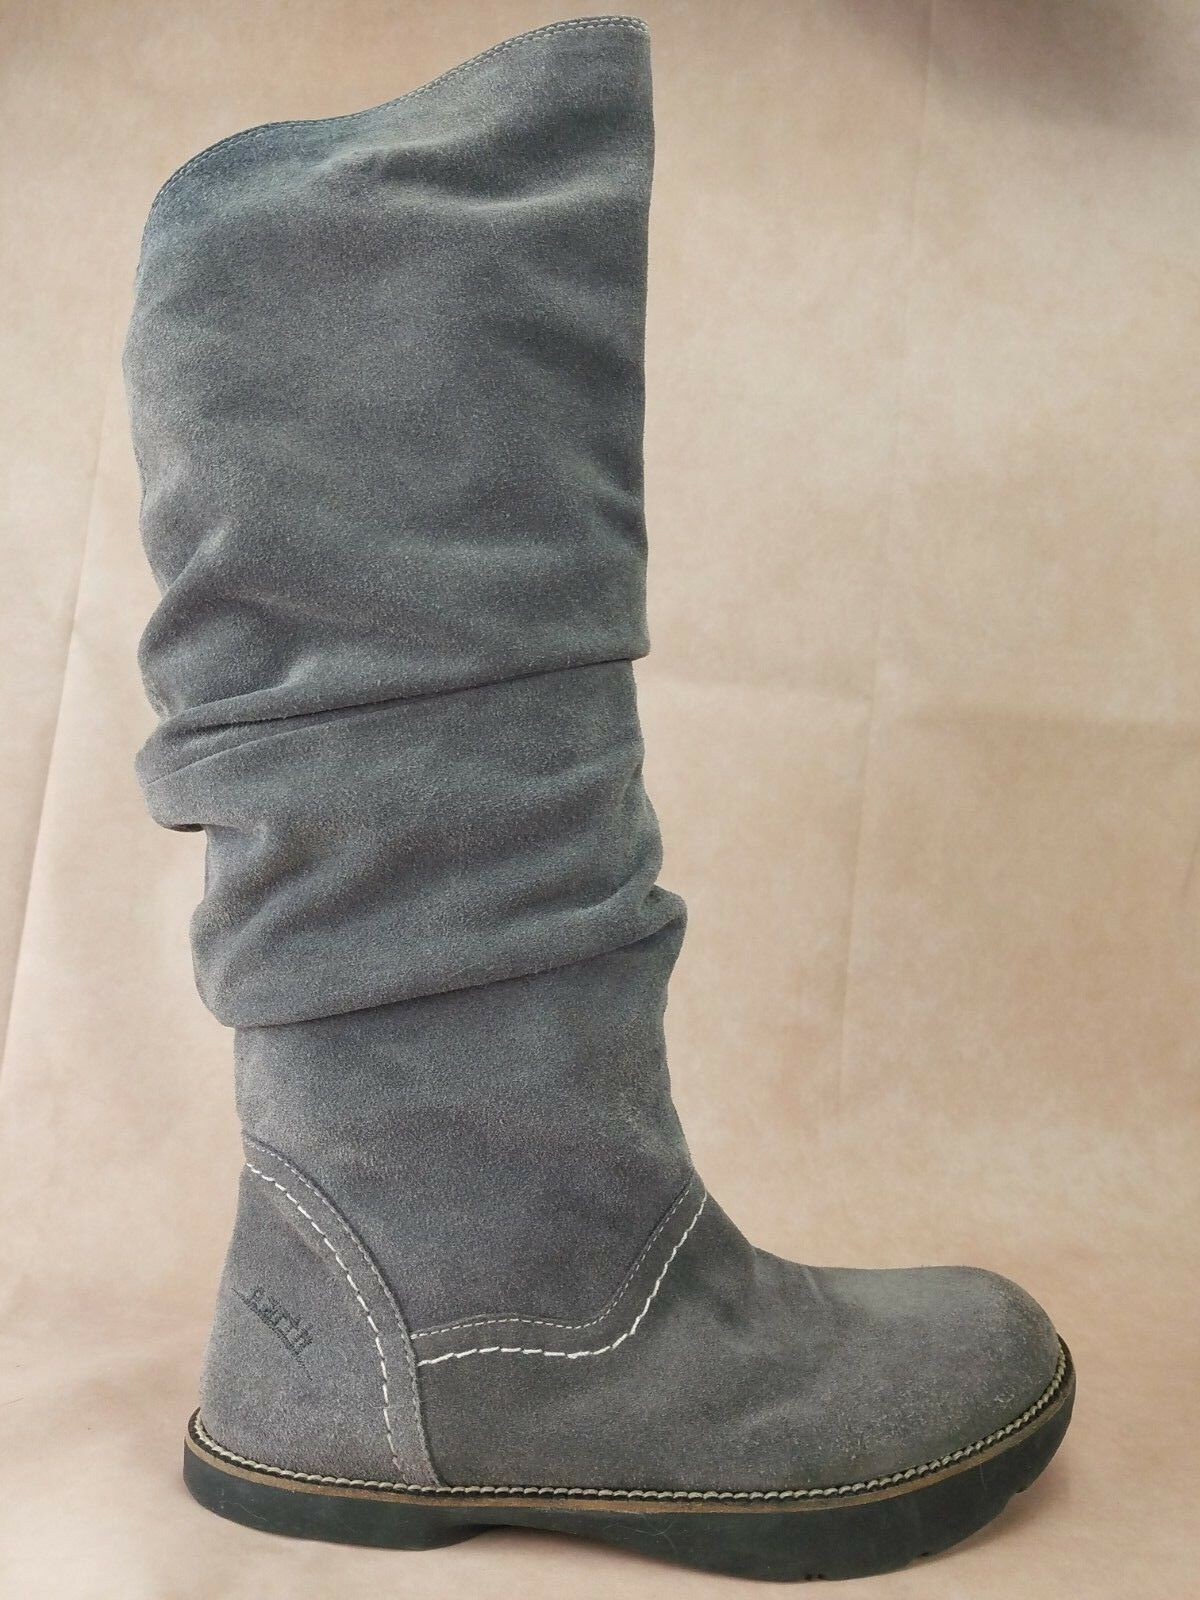 Kalso Earth SWANK Femme SLOUCH genou bottes Taille 7 B cuir gris